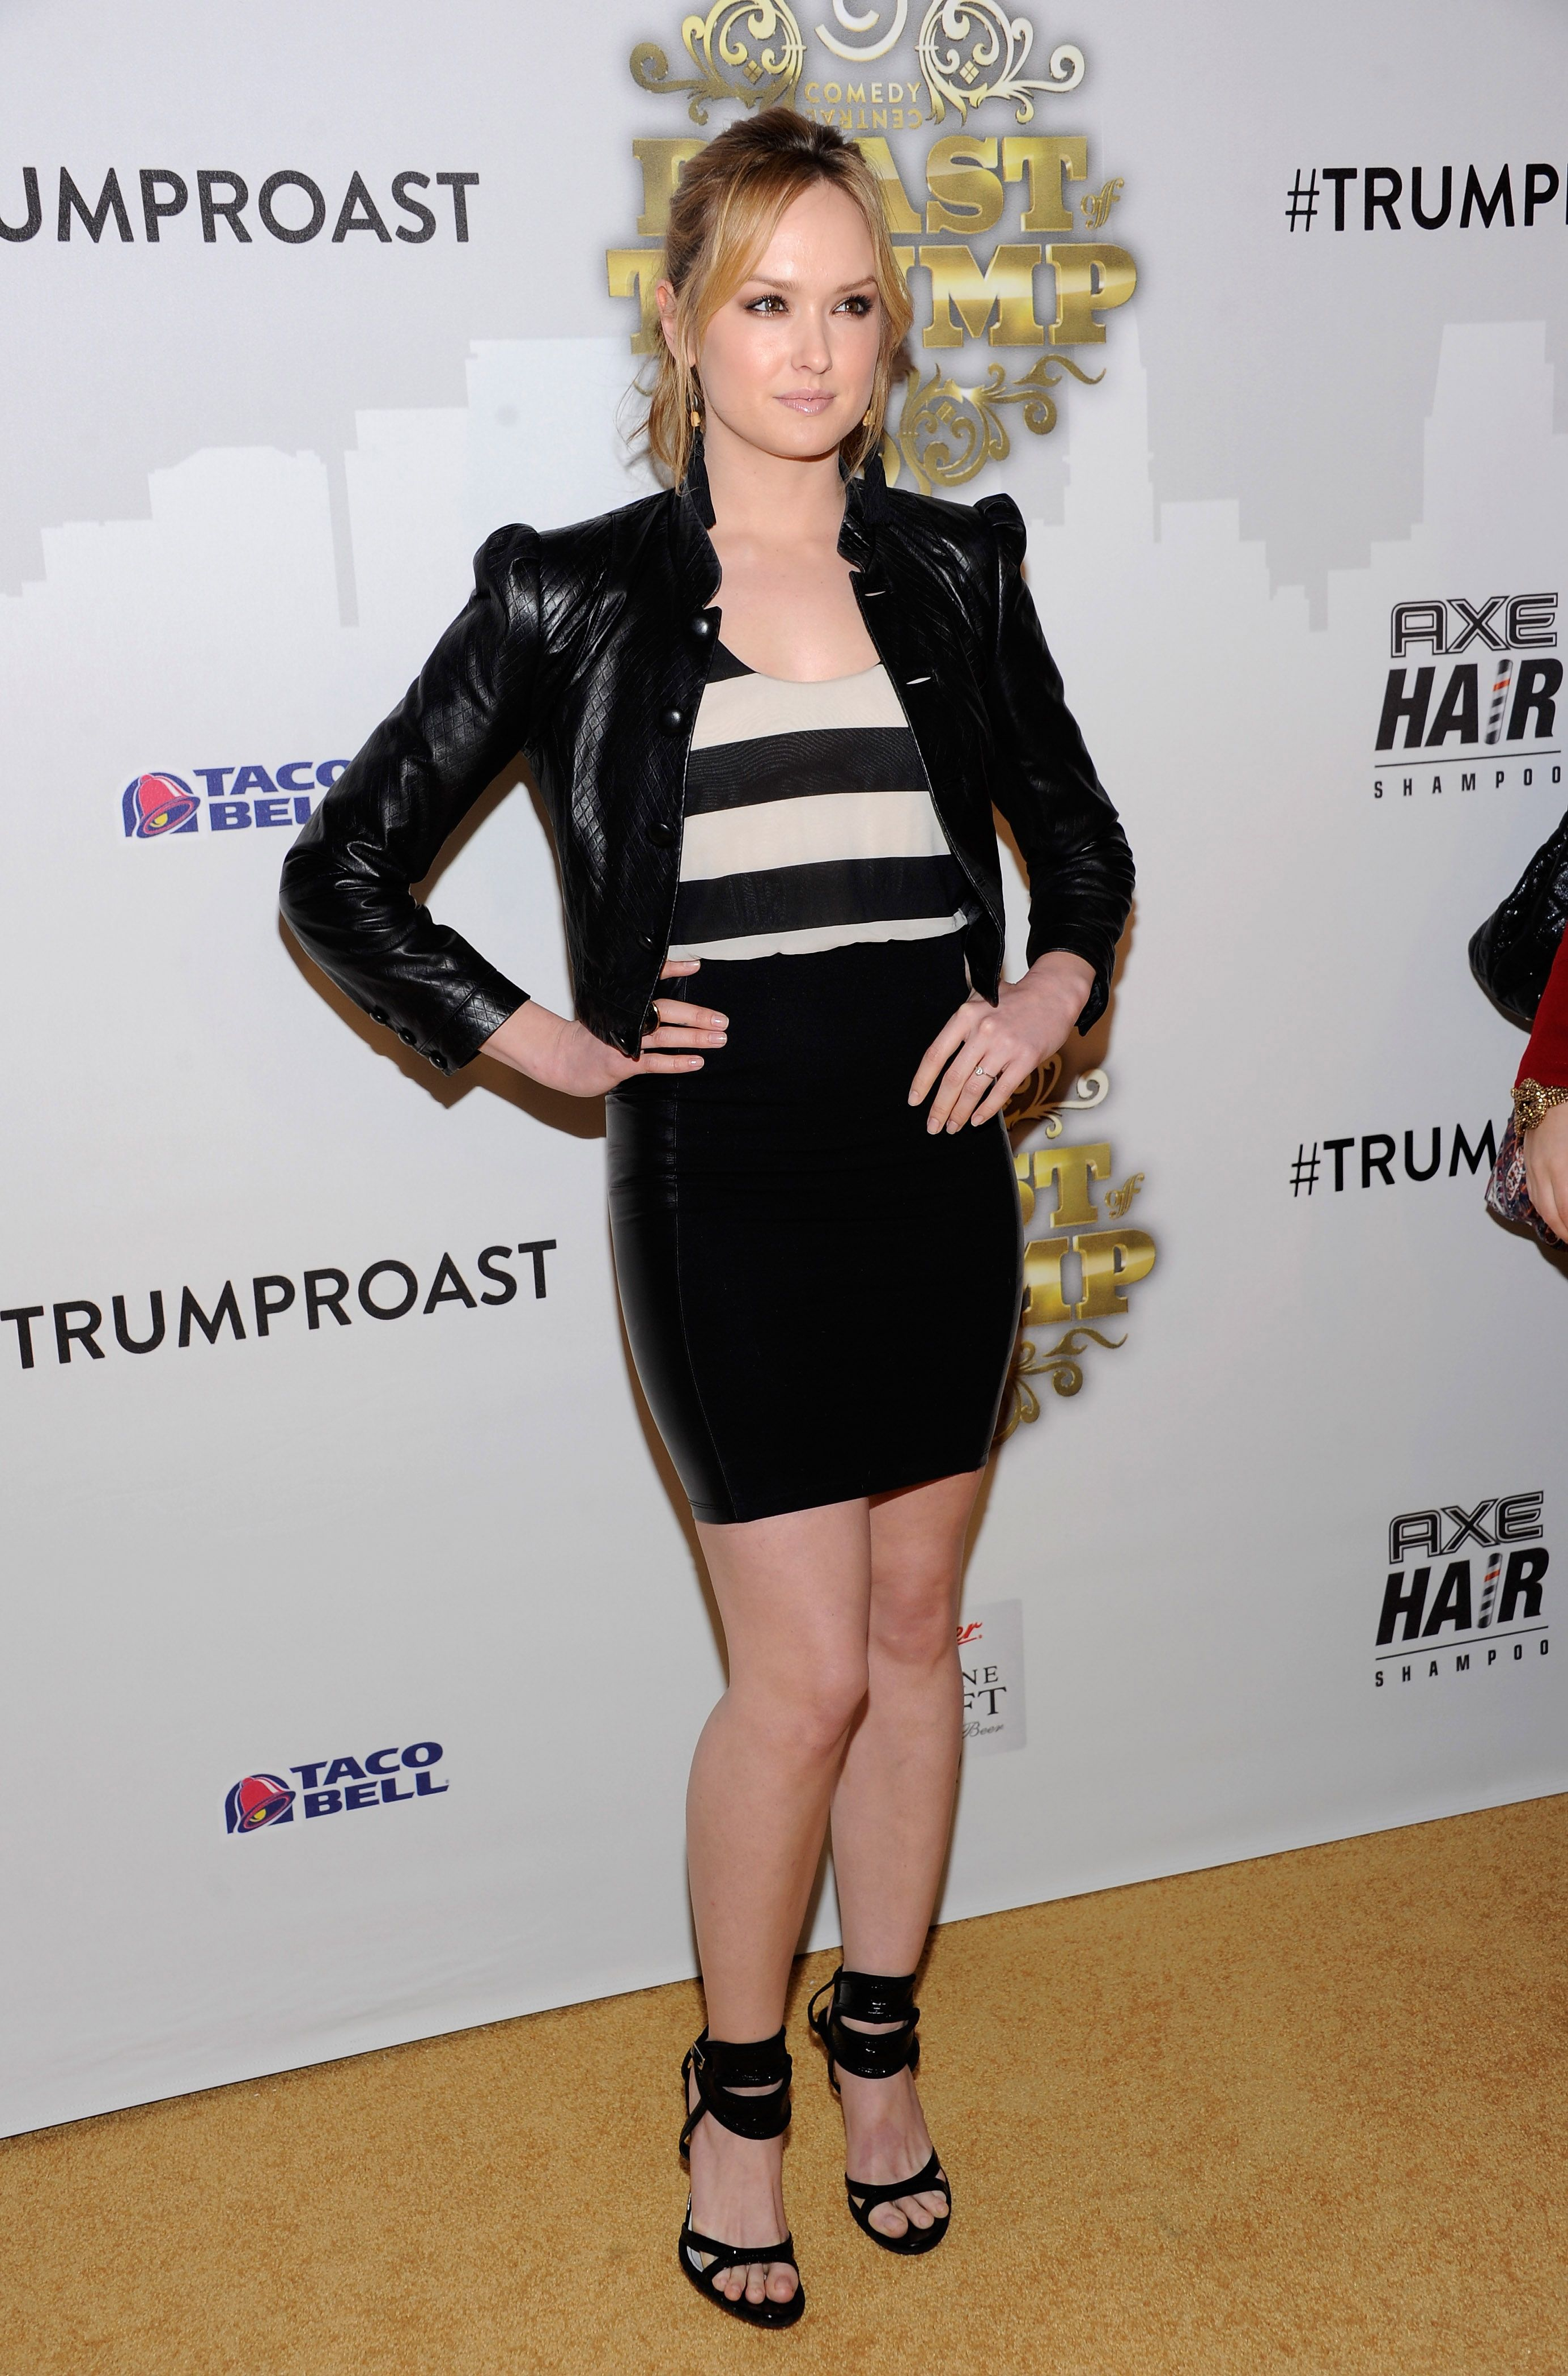 Image result for kaylee defer